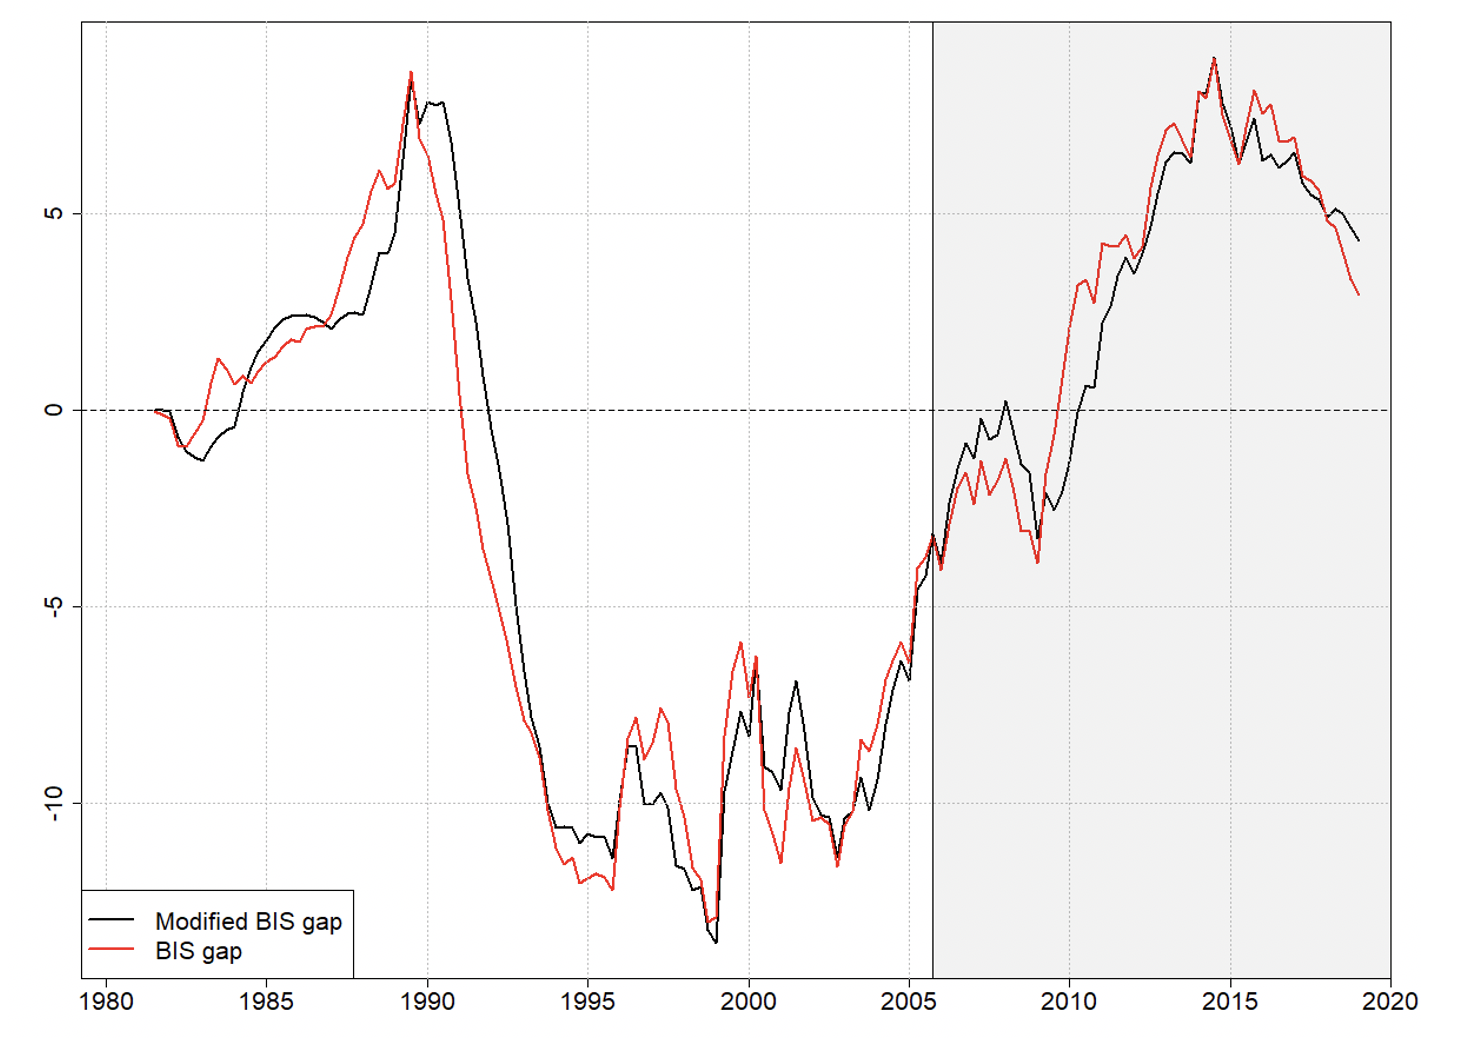 The BIS credit-to-GDP gap and its critiques 1